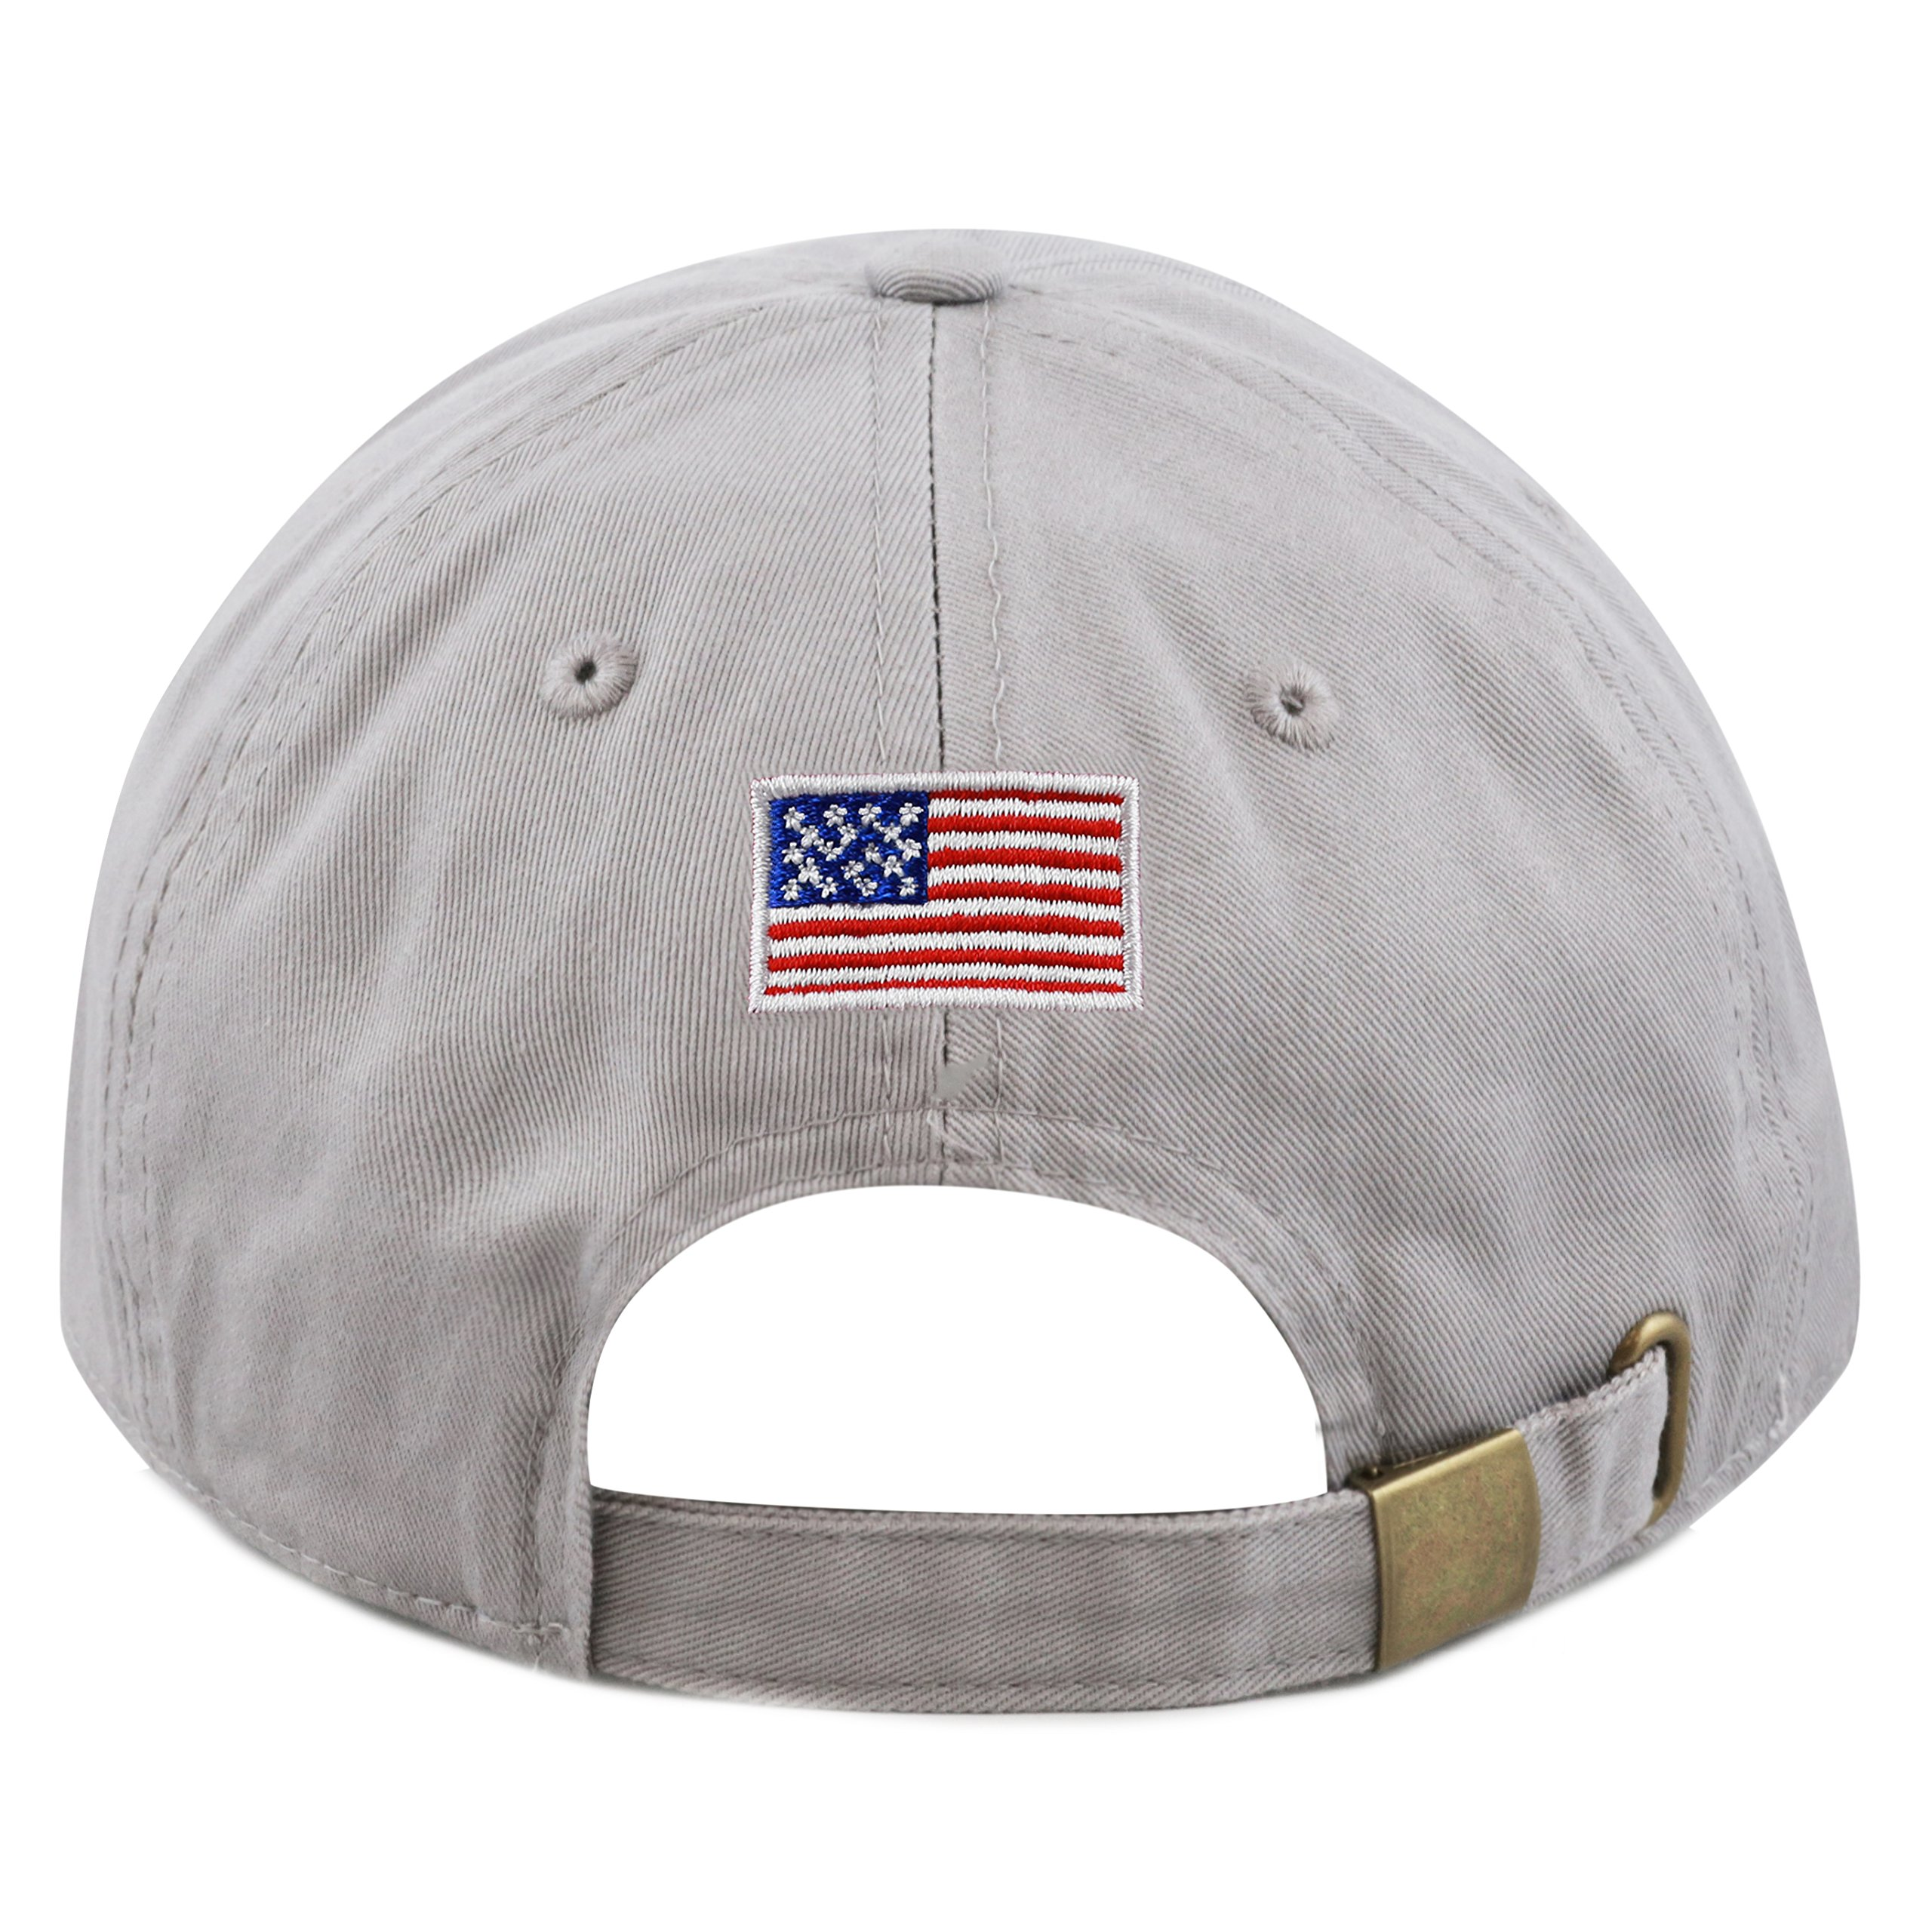 f046c572ffa THE HAT DEPOT Trump 2020 President Campaign Flag Washed Cotton Unstructured  Cap (Grey). Store Home Our Feedback Ask a Question